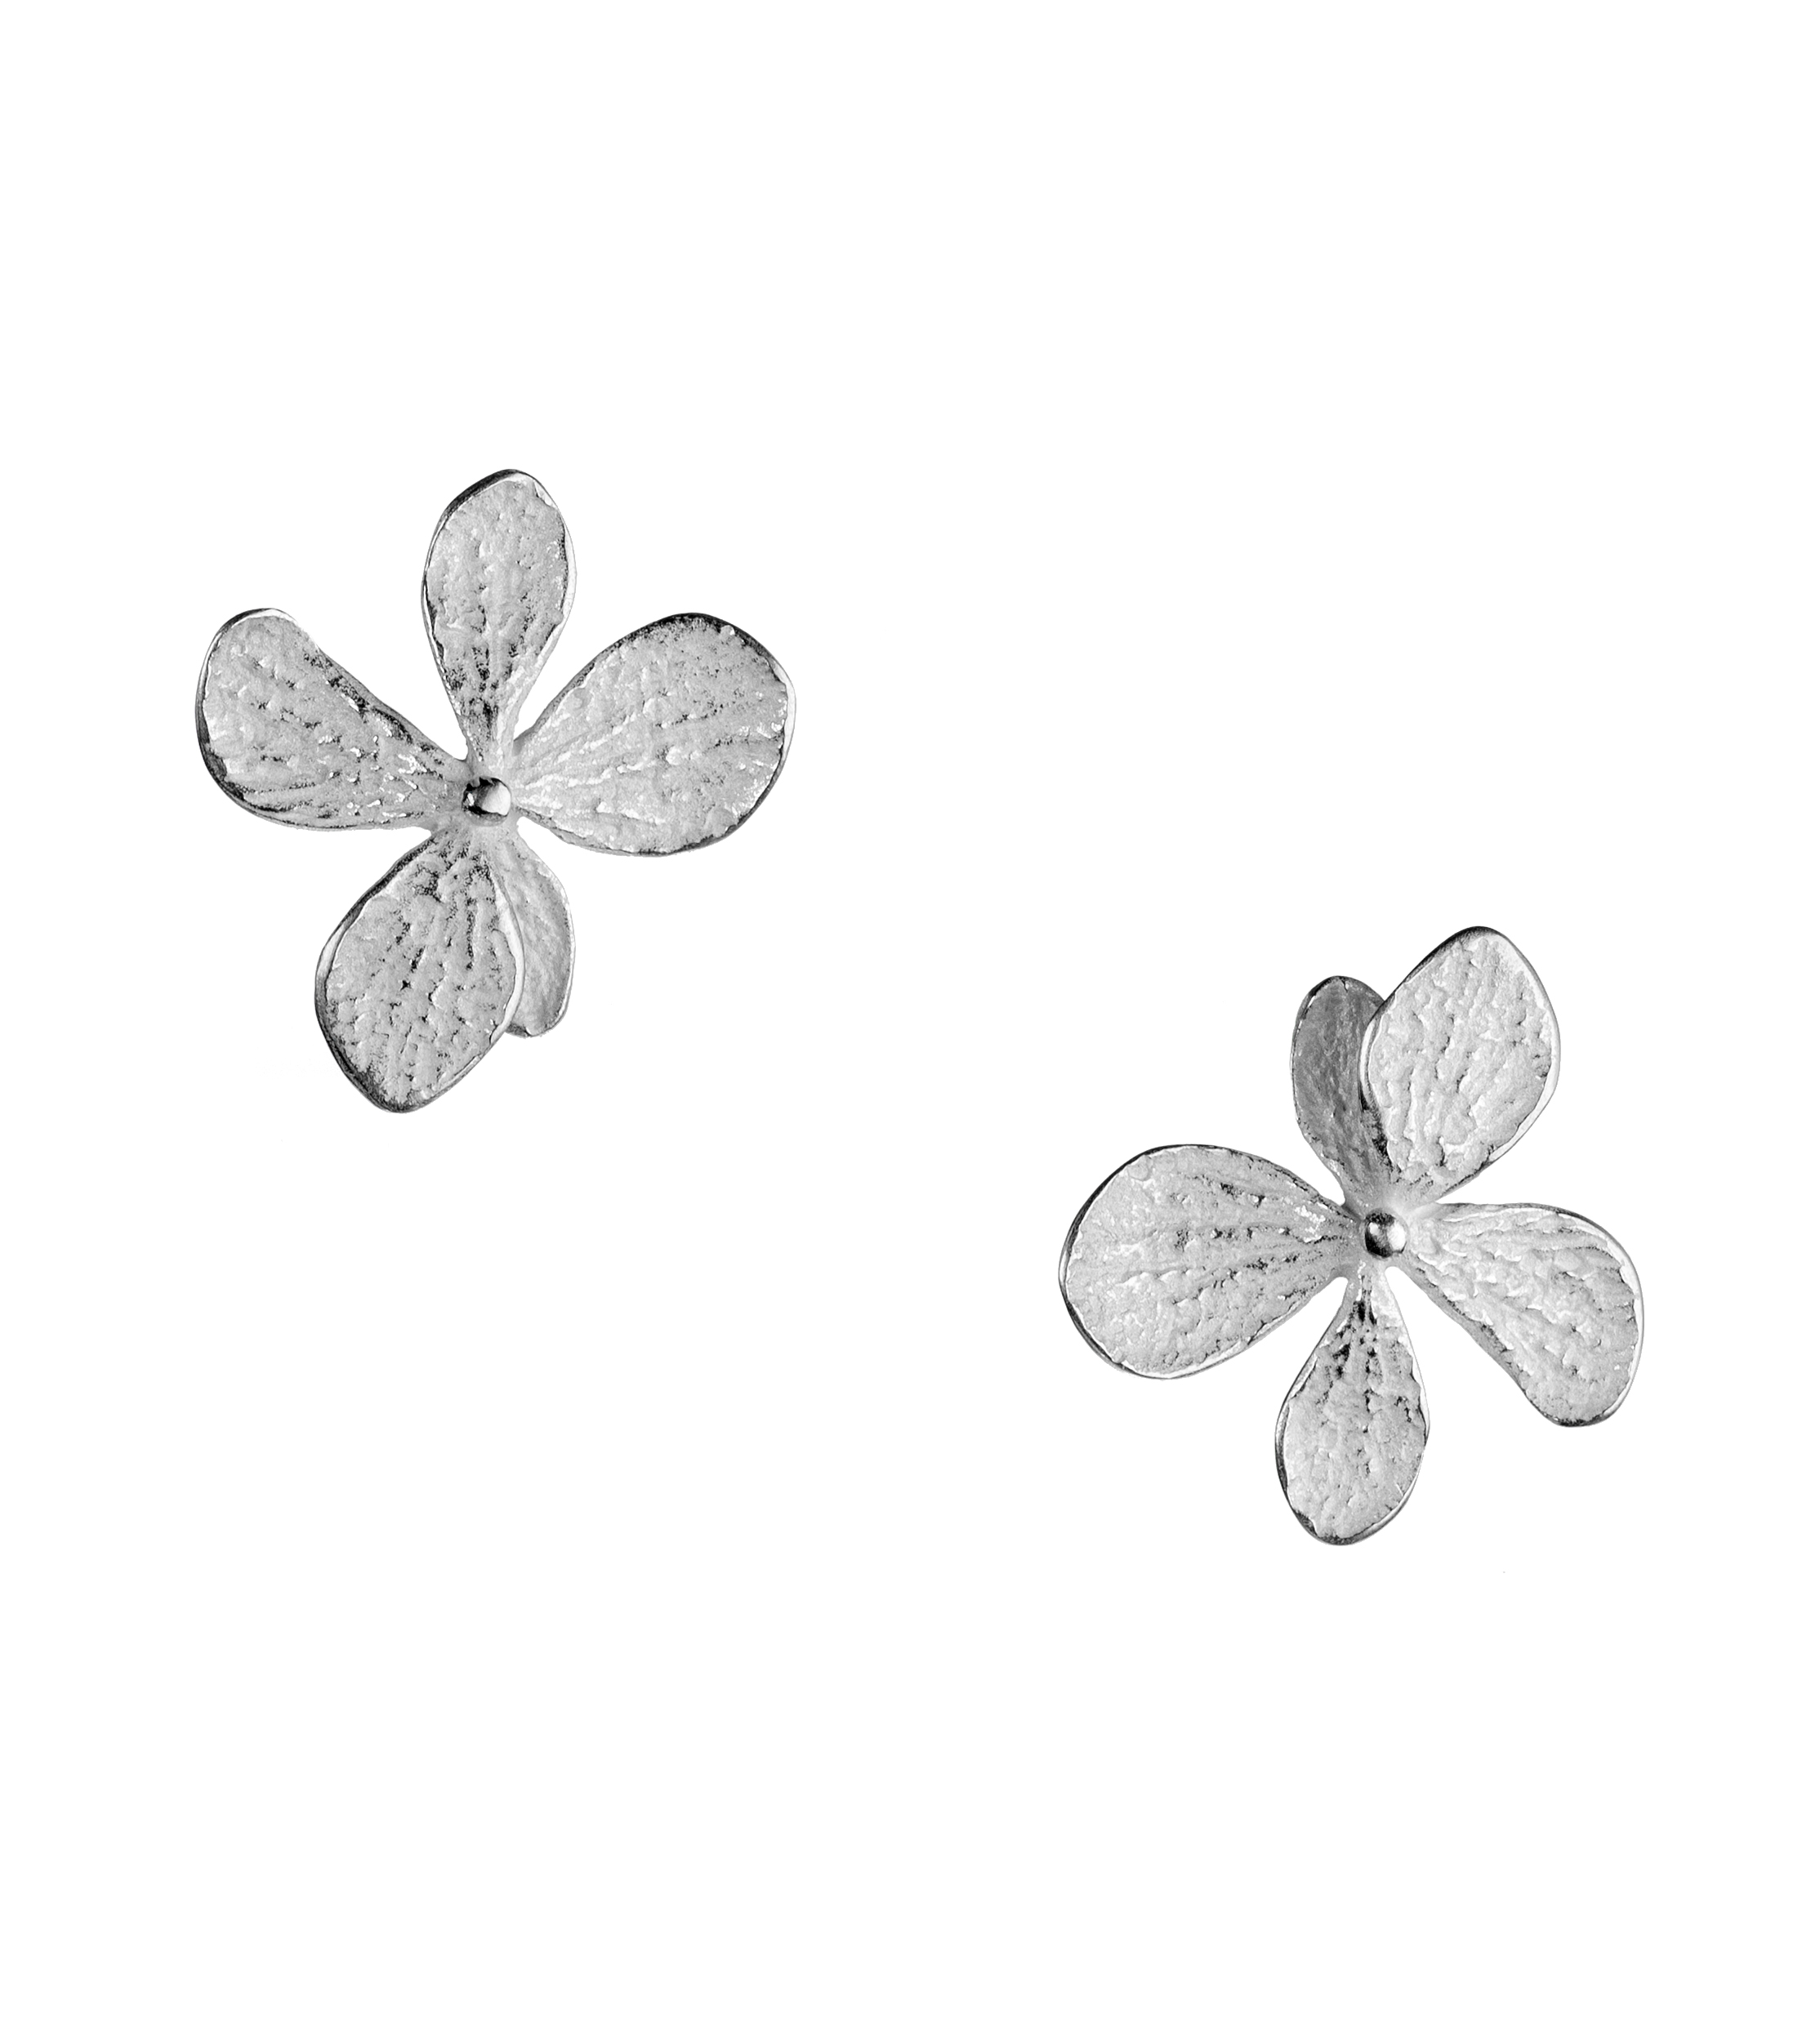 Medium single hydrangea stud earrings